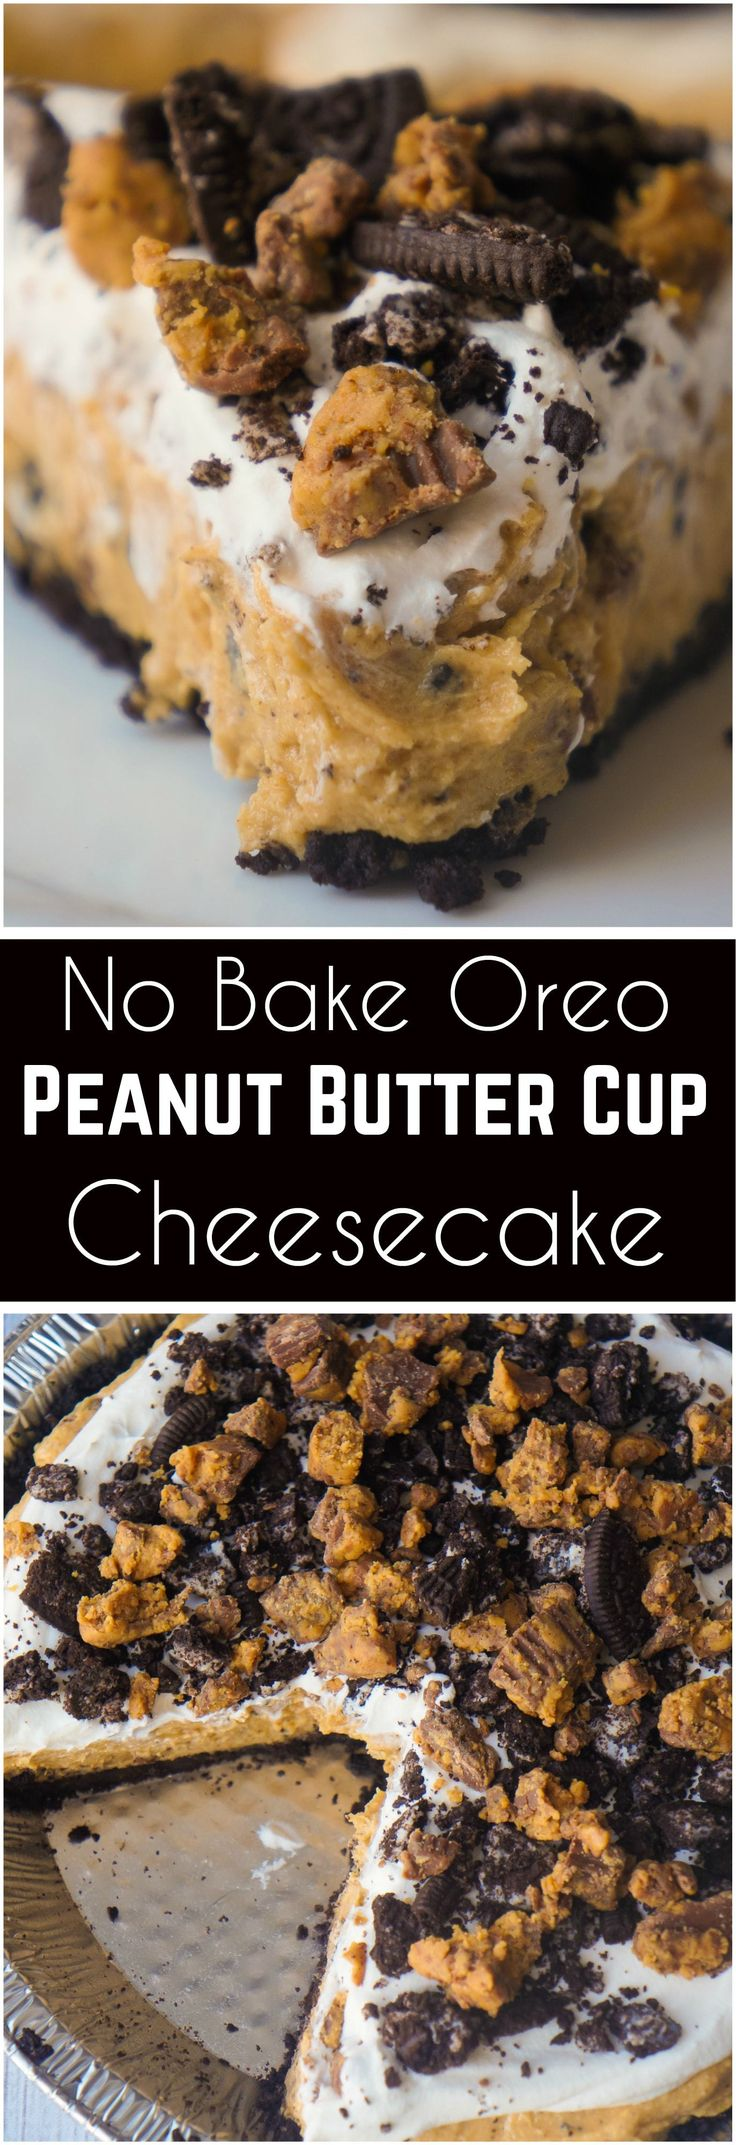 No Bake Oreo Peanut Butter Cup Cheesecake is a quick and easy dessert recipe perfect for any occasion. An Oreo cookie pie crust is filled with a delicious peanut butter and cream cheese mixture loaded with pieces of Reese's Peanut Butter Cups and Oreo cookies.